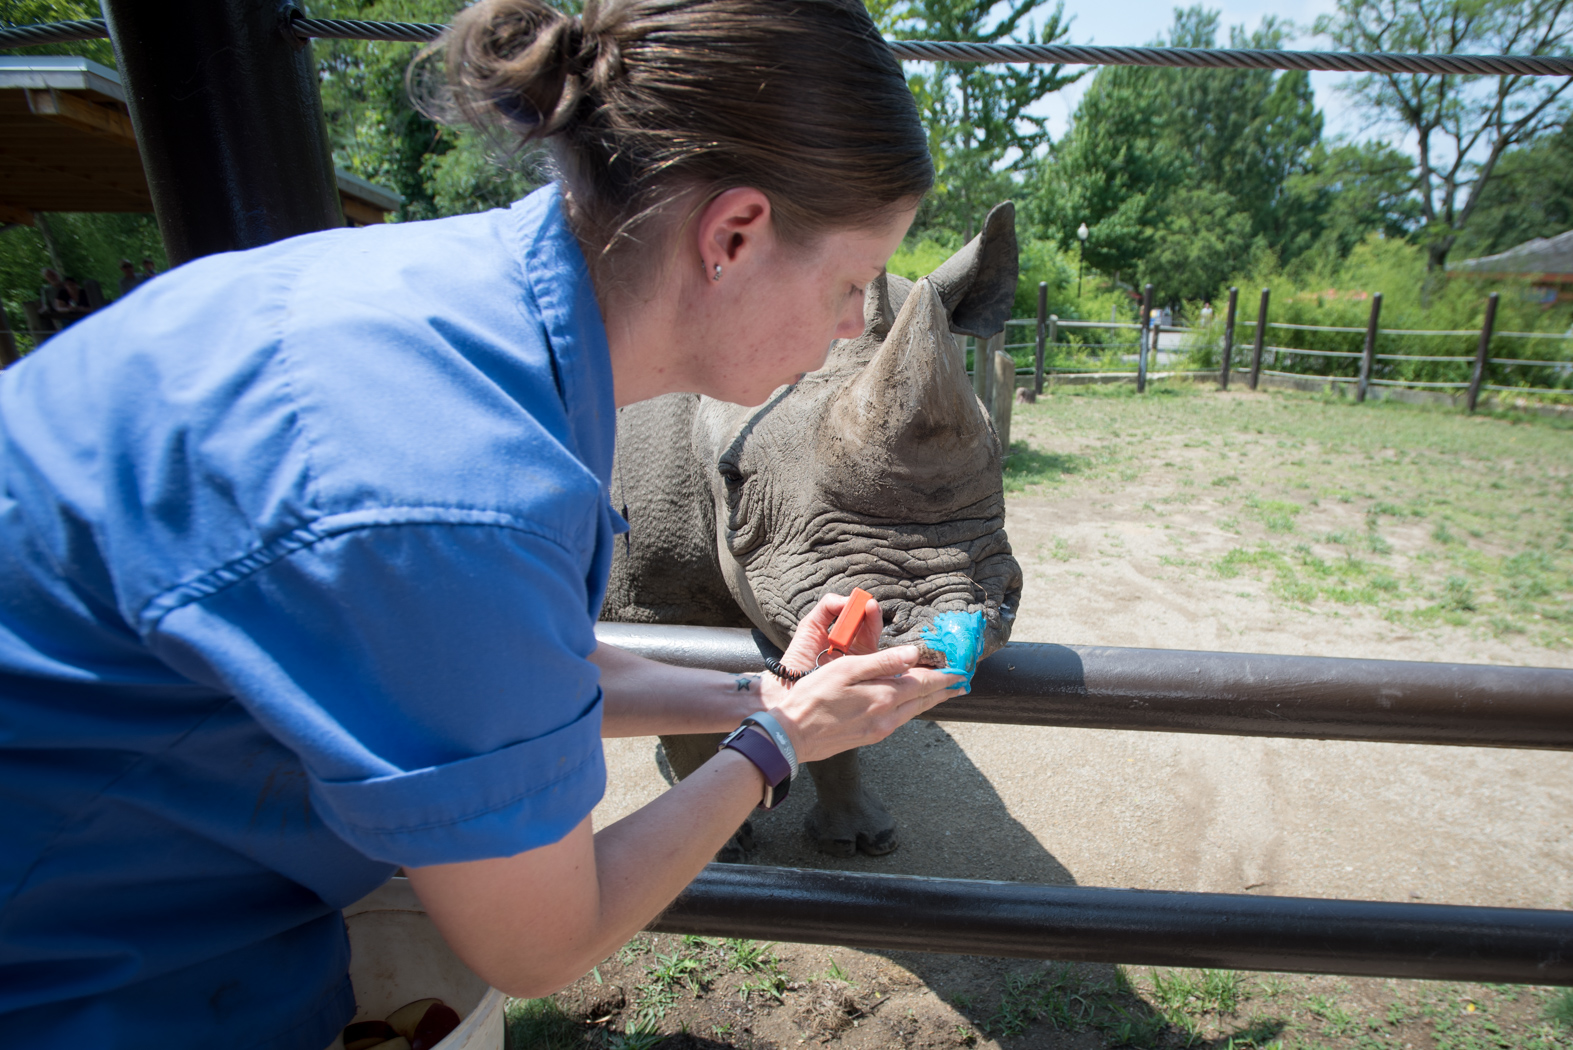 Rosie the rhino at the Columbus zoo gets ready to paint with zookeeper Mindi